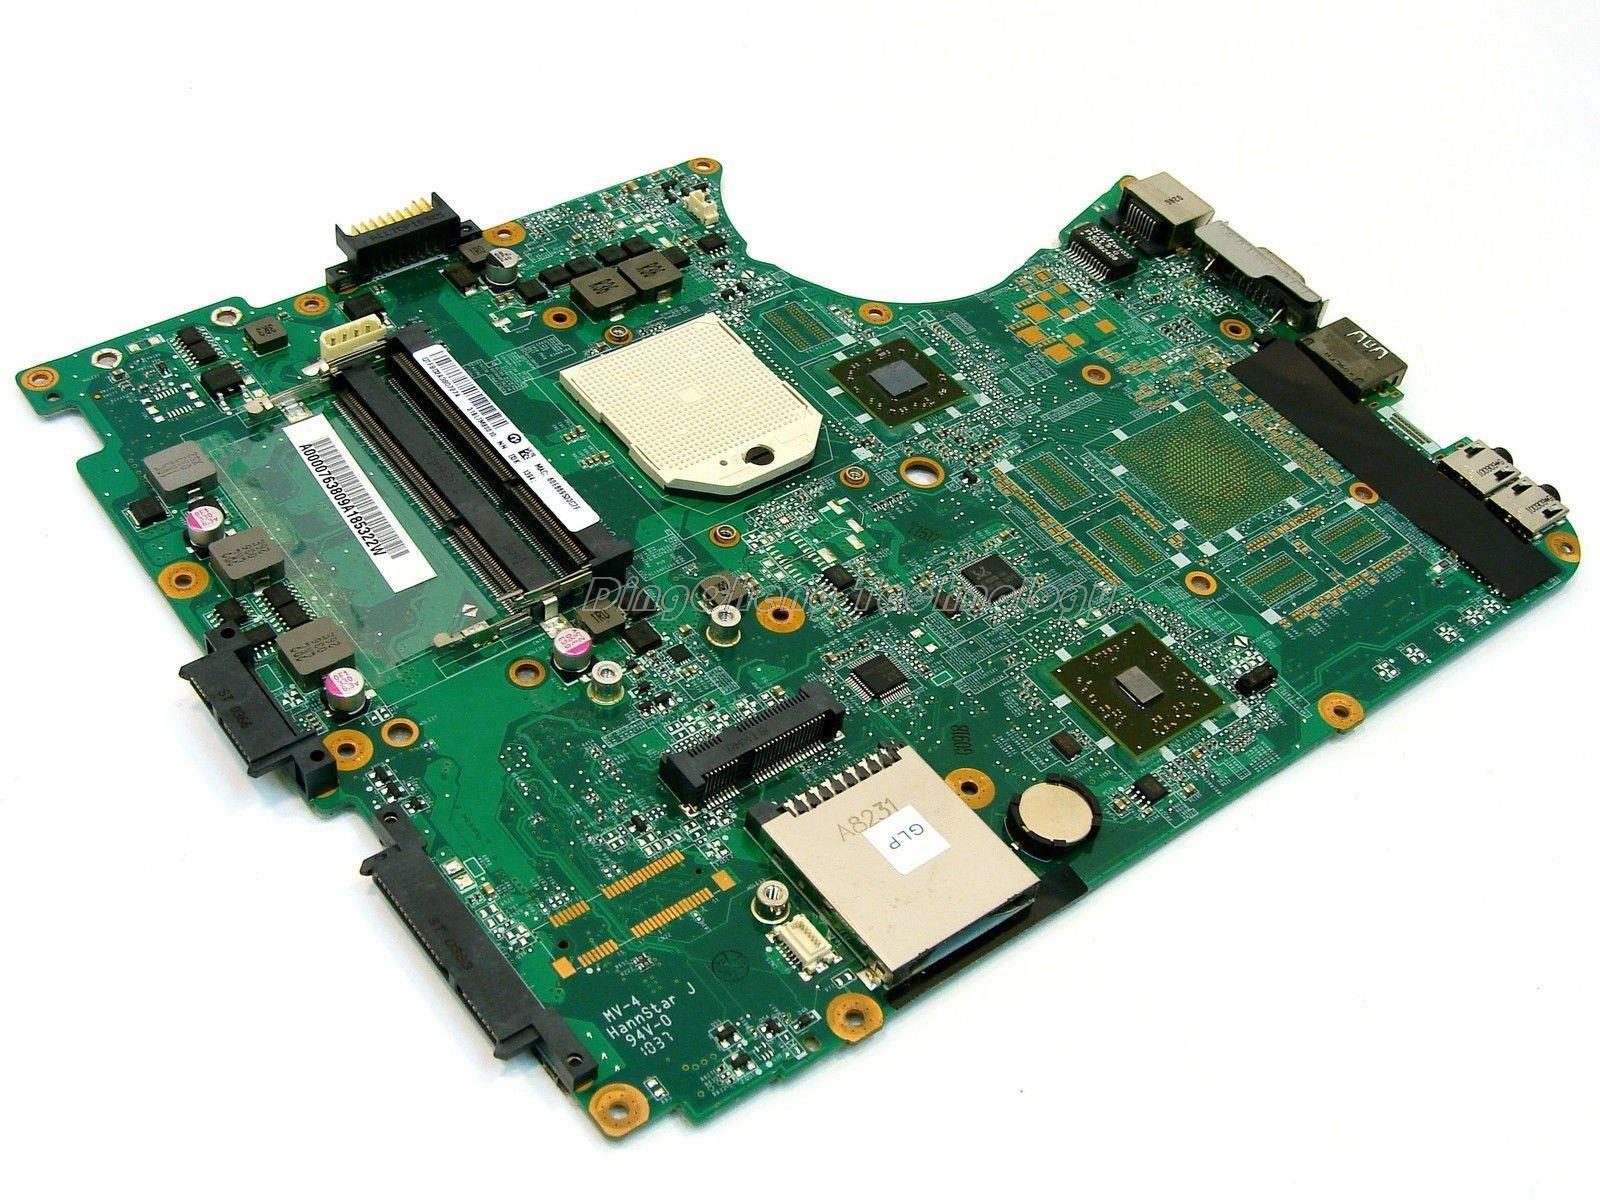 SHELI laptop Motherboard For Toshiba L655D A000076380 DA0BL7MB6D0 DDR3 integrated graphics card 100% fully tested